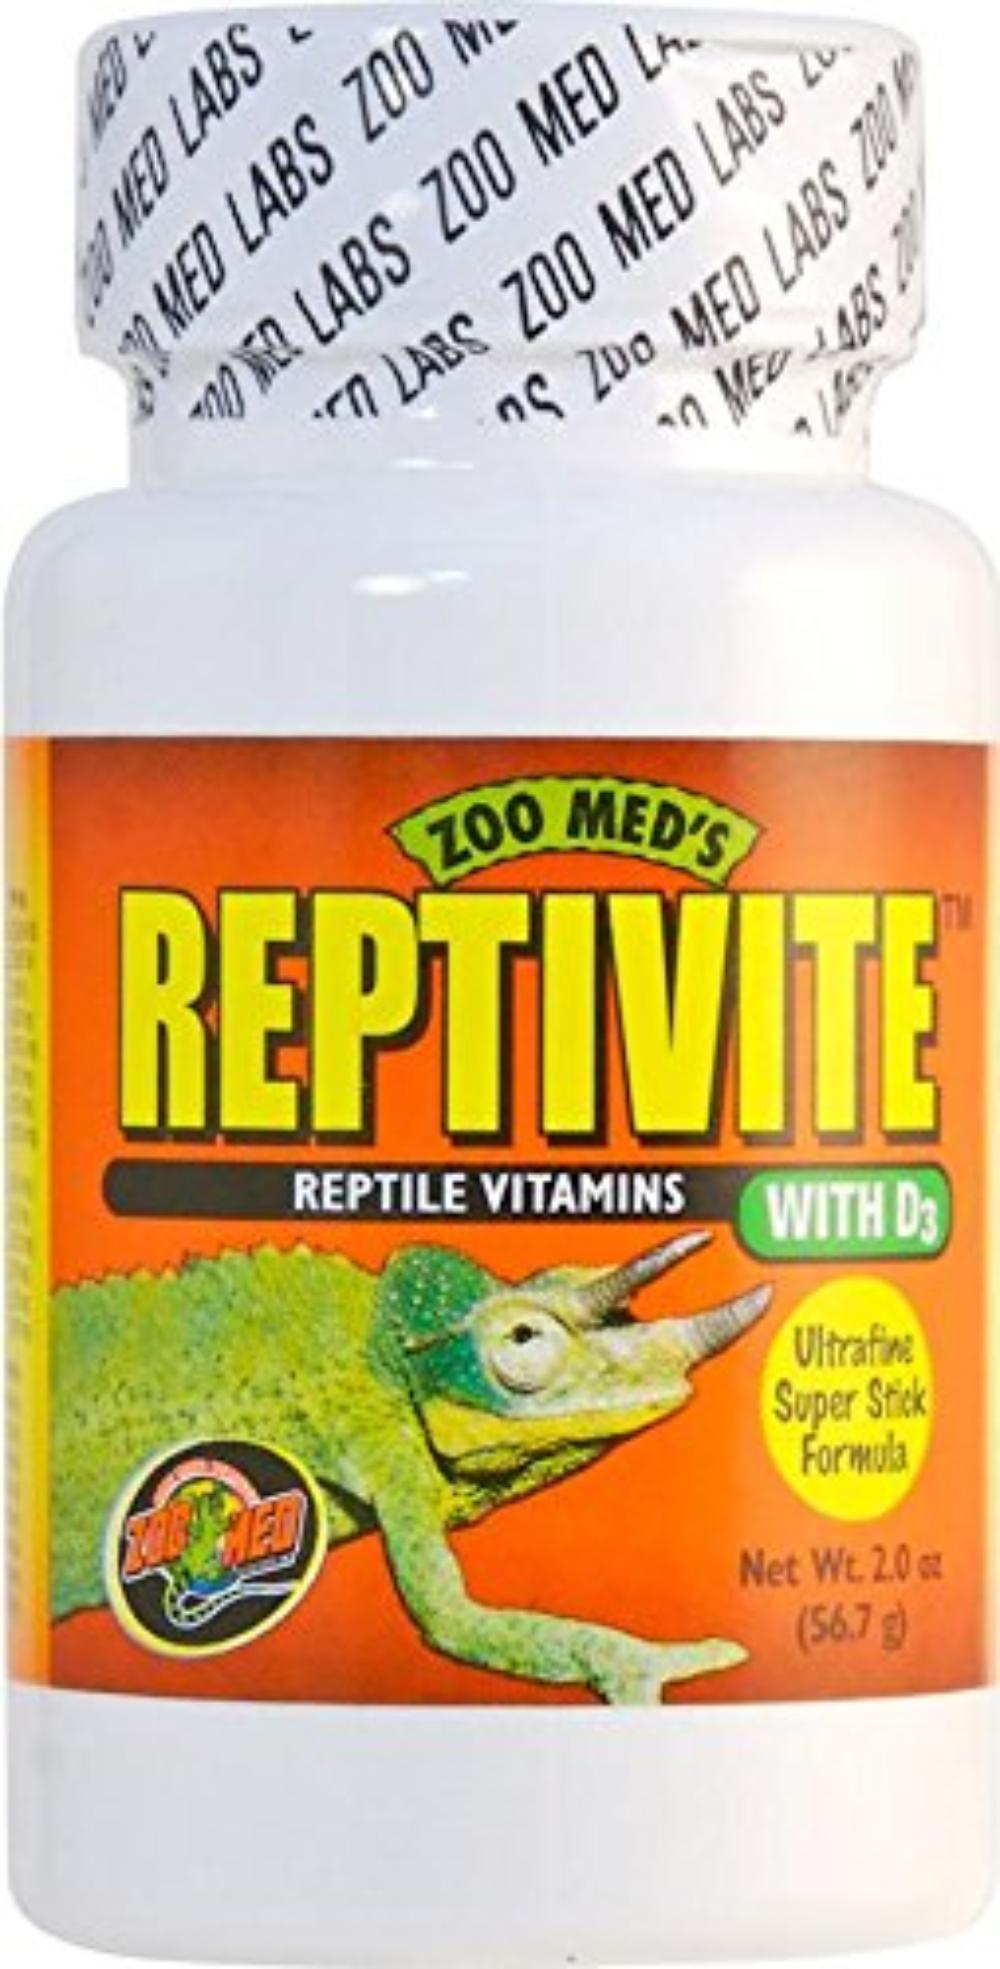 Reptivite, with Vitamin D3, 2-Ounce, Ultra fine super stick formula By Zoo Med